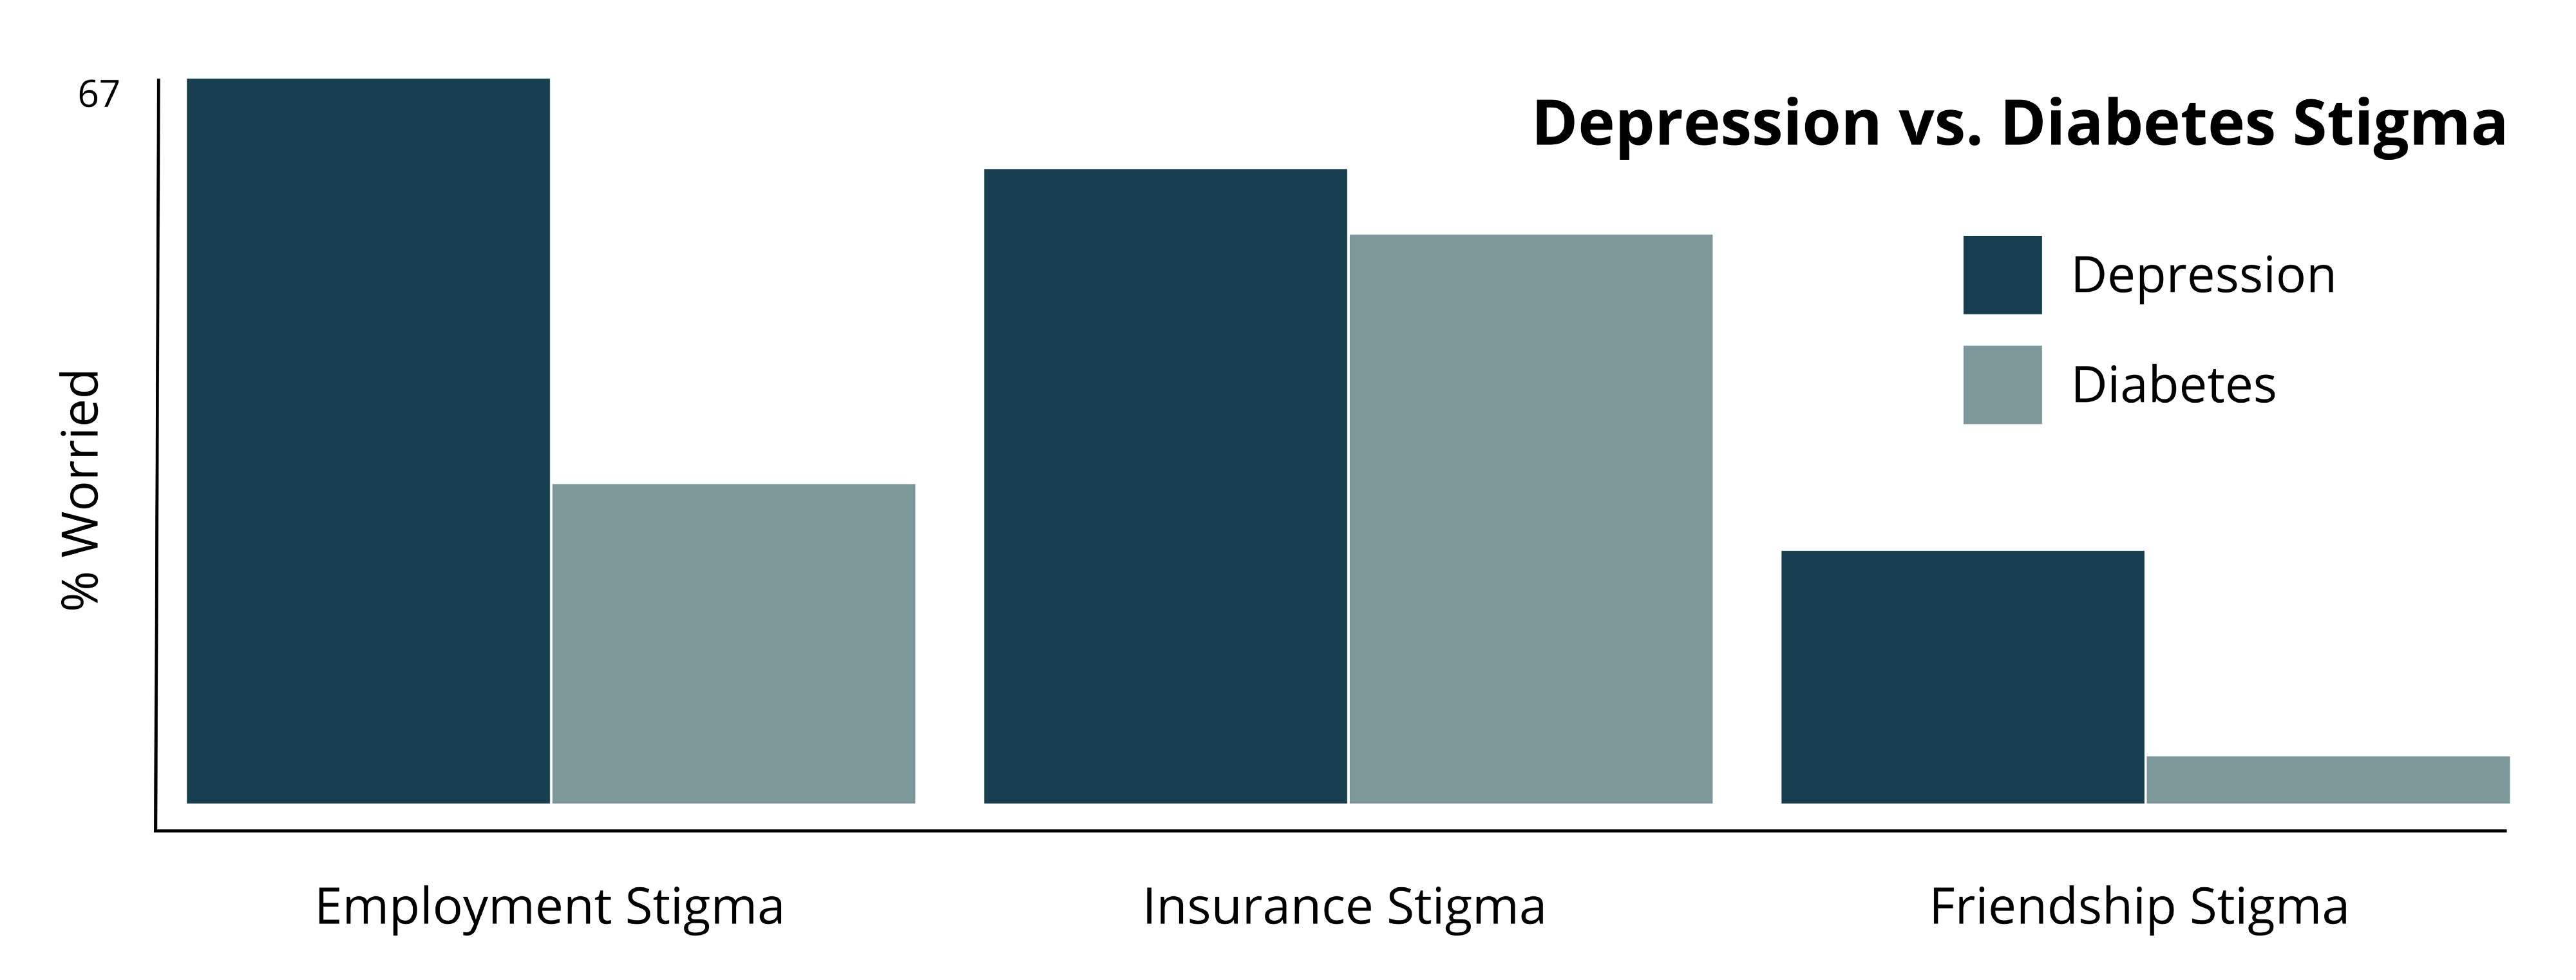 Bar Graph comparing depression and diabetes for different types of stigma.